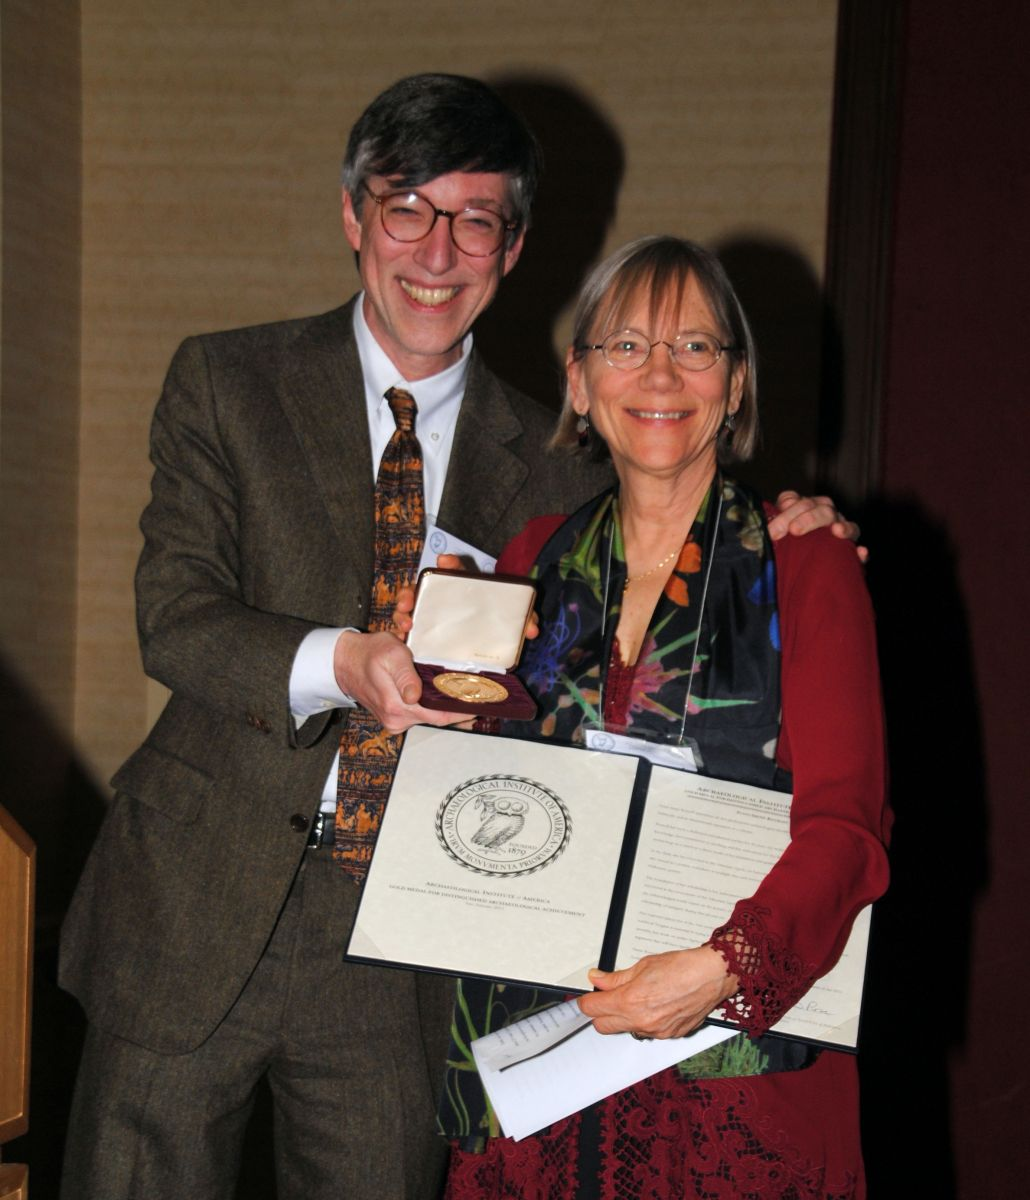 Brian Rose presents Susan Rotroff with the Gold Medal Award